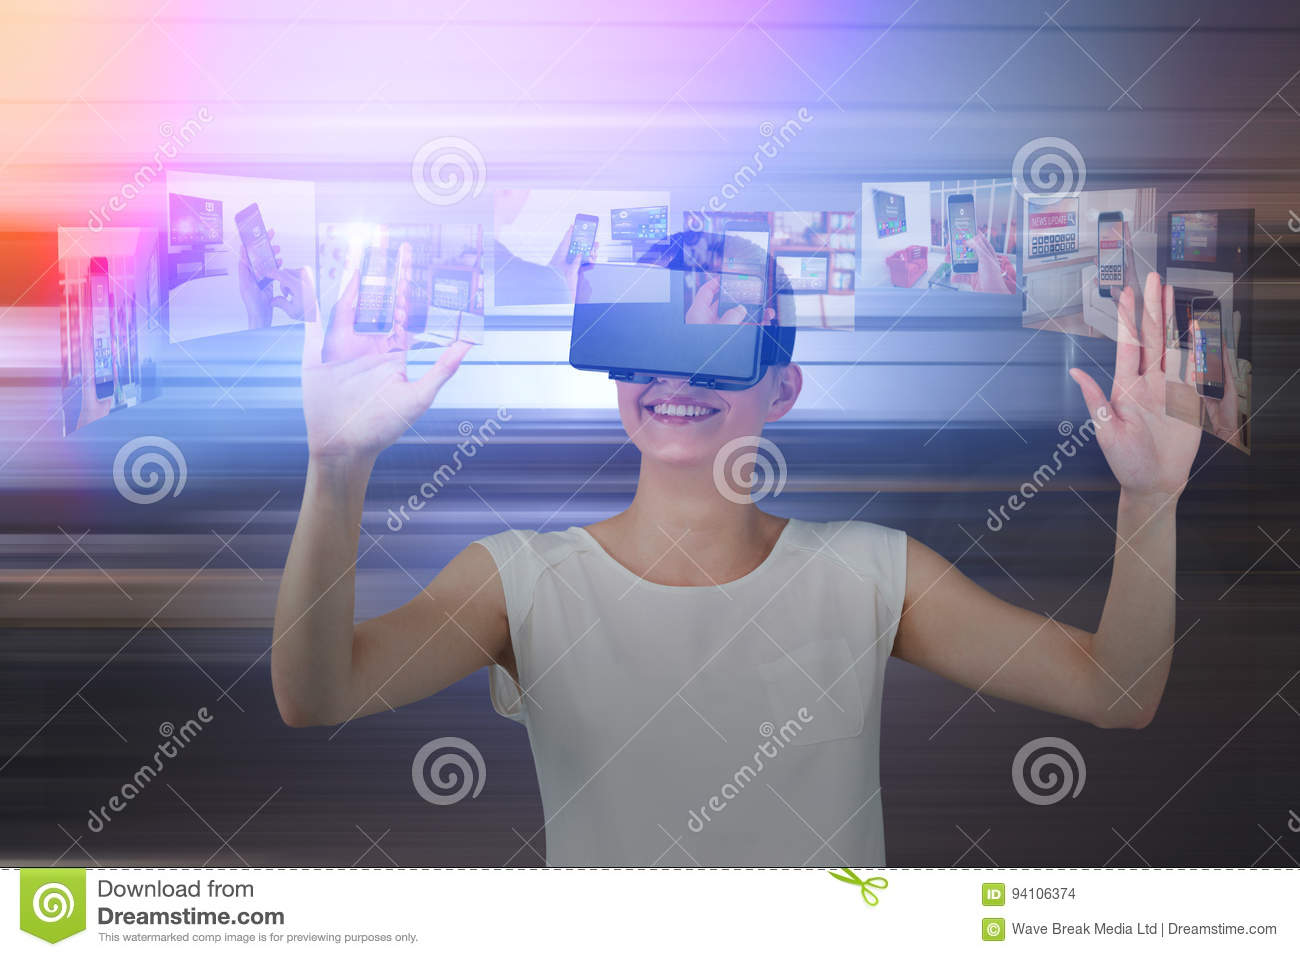 Composite image of happy woman gesturing while using virtual reality headset